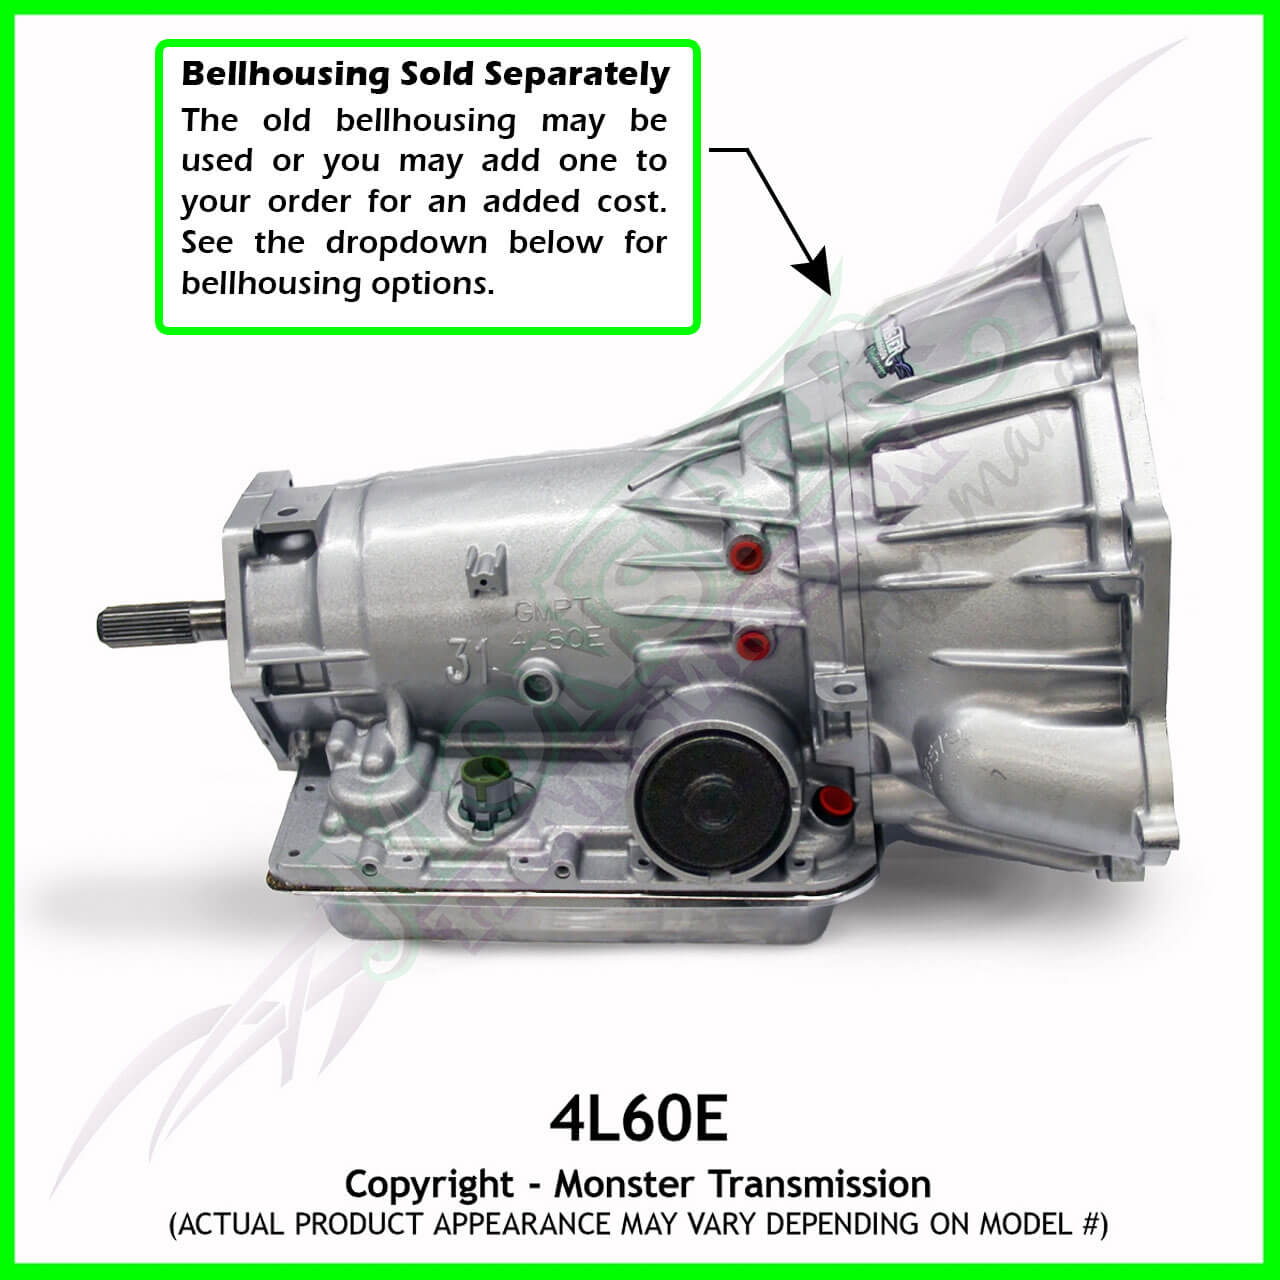 4l60e Transmission Remanufactured 4x4 Heavy Duty 2pc Case 4wd Jeep 4 0l Engine Bellhousing Diagram Accept Cookies